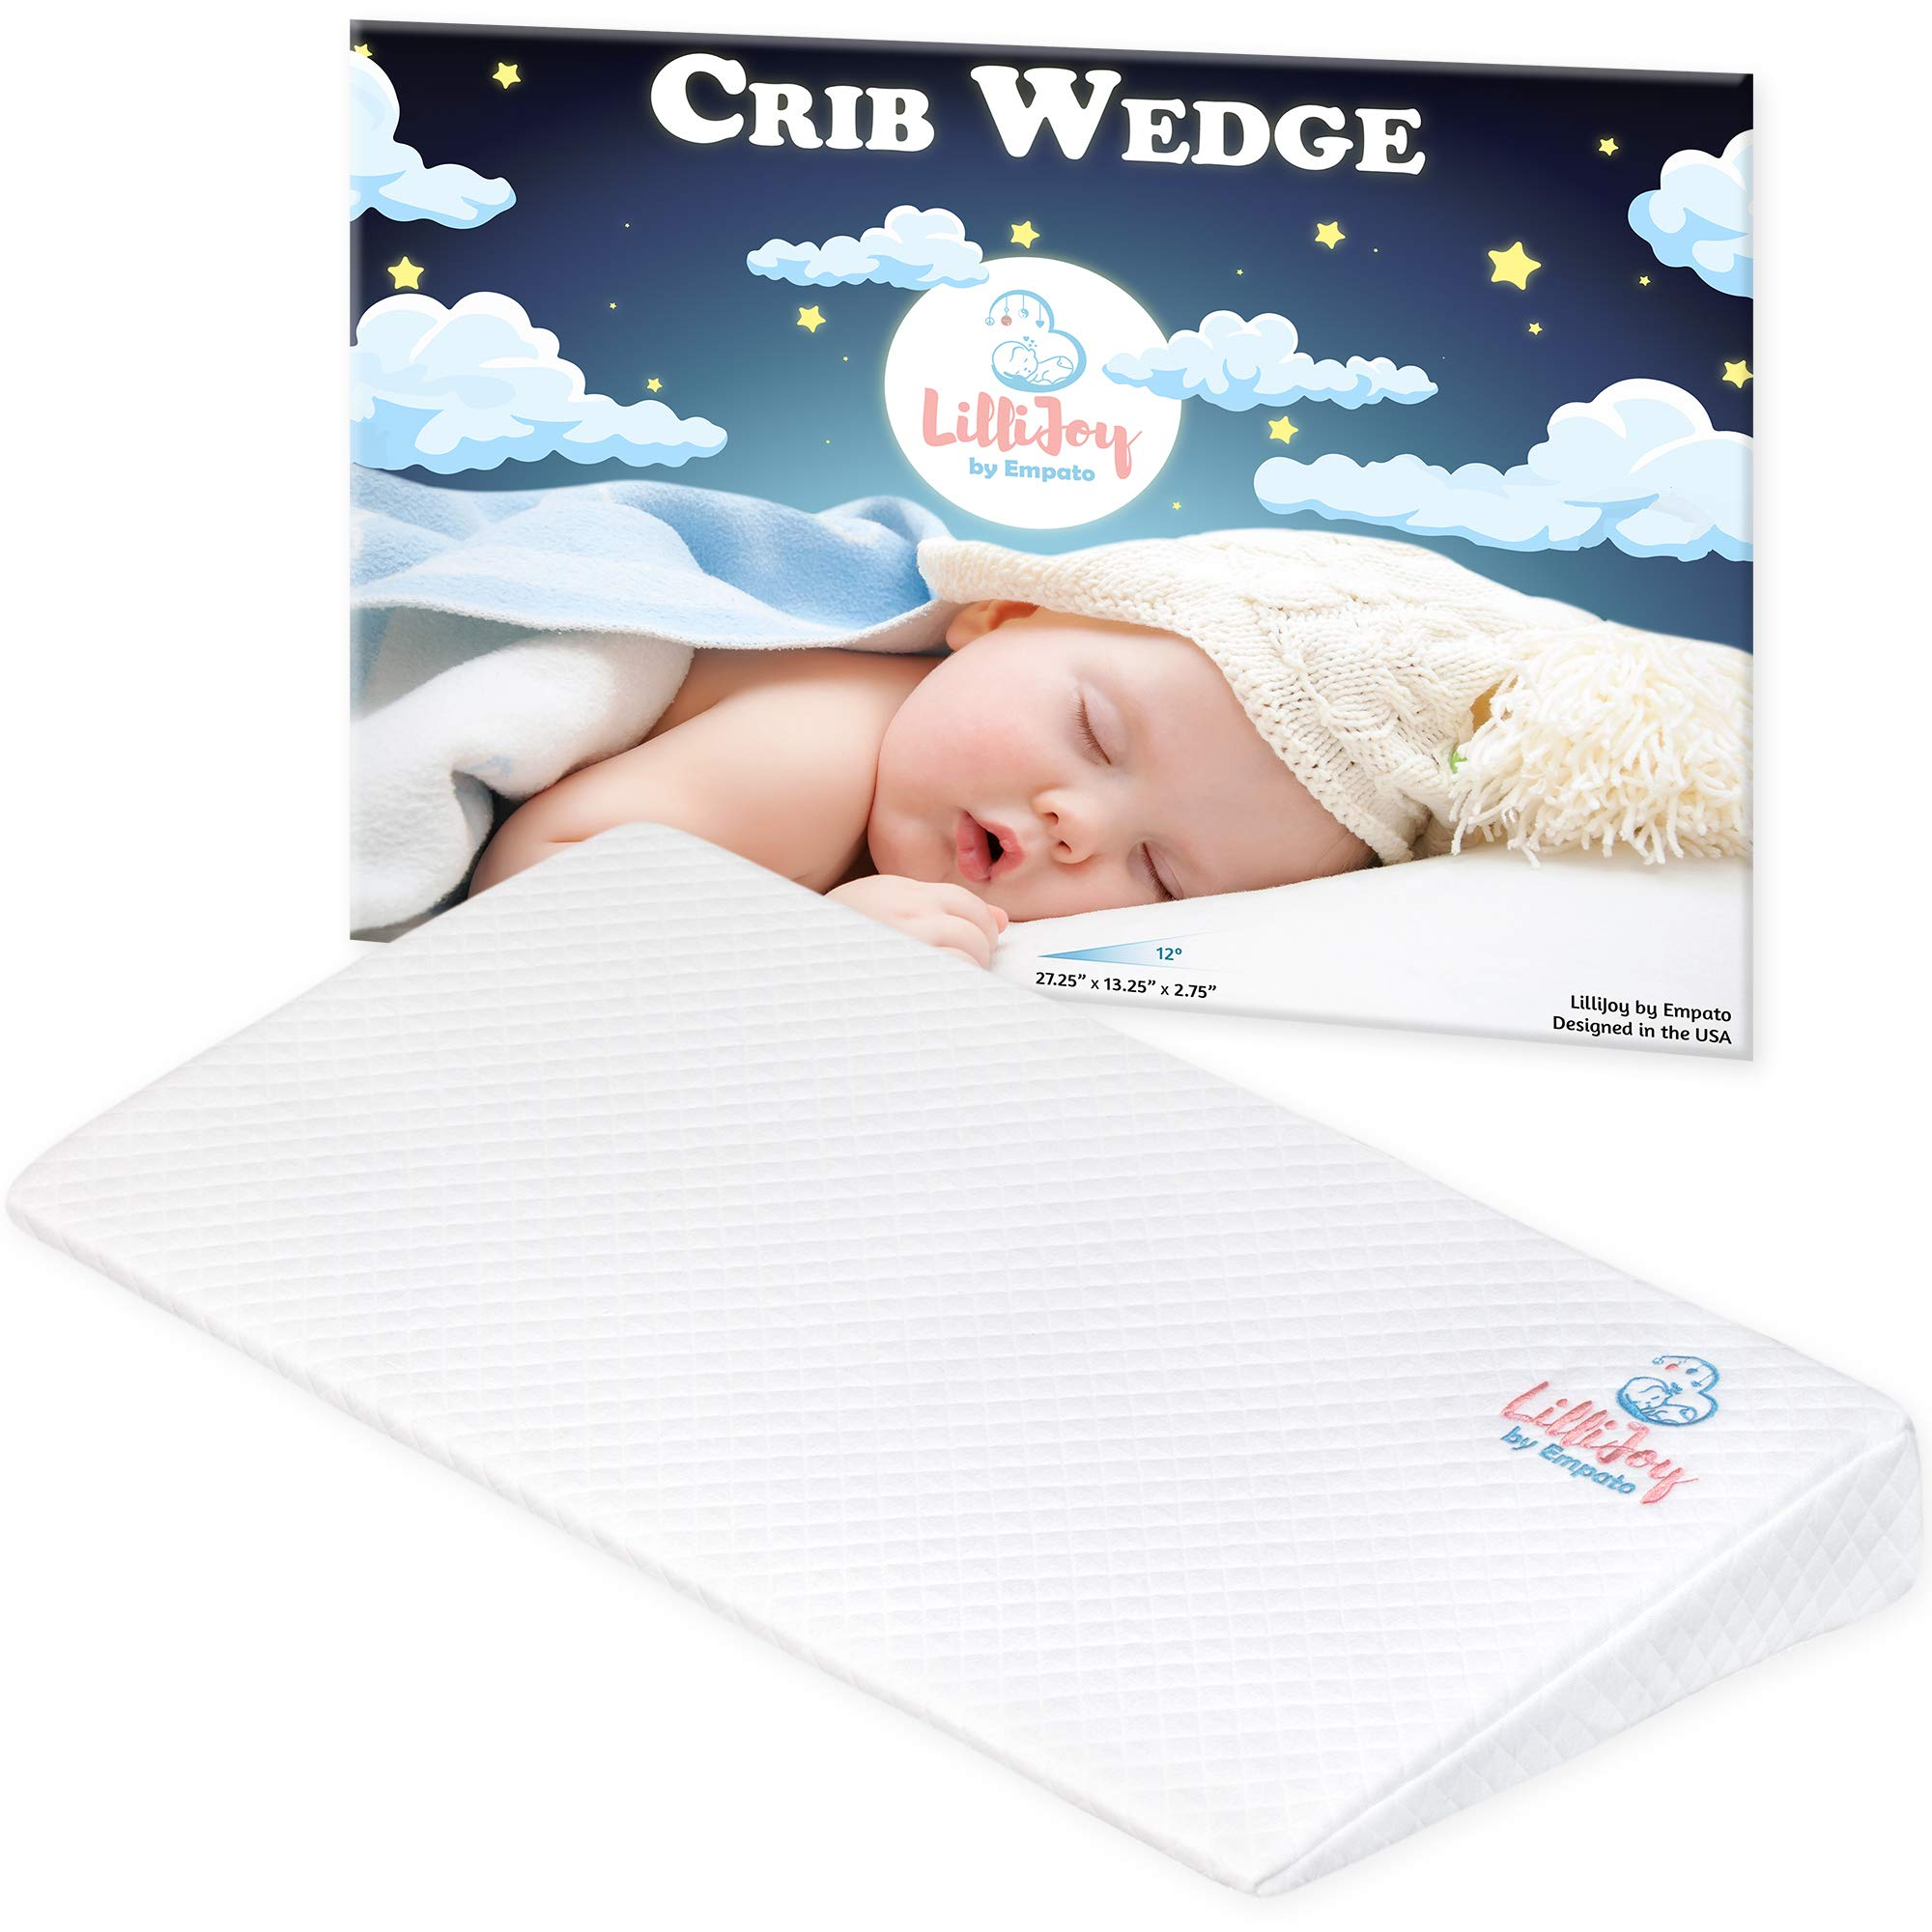 LilliJoy Baby Crib Wedge for Reflux - Premium Infant Sleep Positioner for Acid Reflux & Nasal Congestion - 12 Degree Incline High Sleeper Pillow for Mattress - 100% Cotton Cover - Comfortable & Soft by LilliJoy